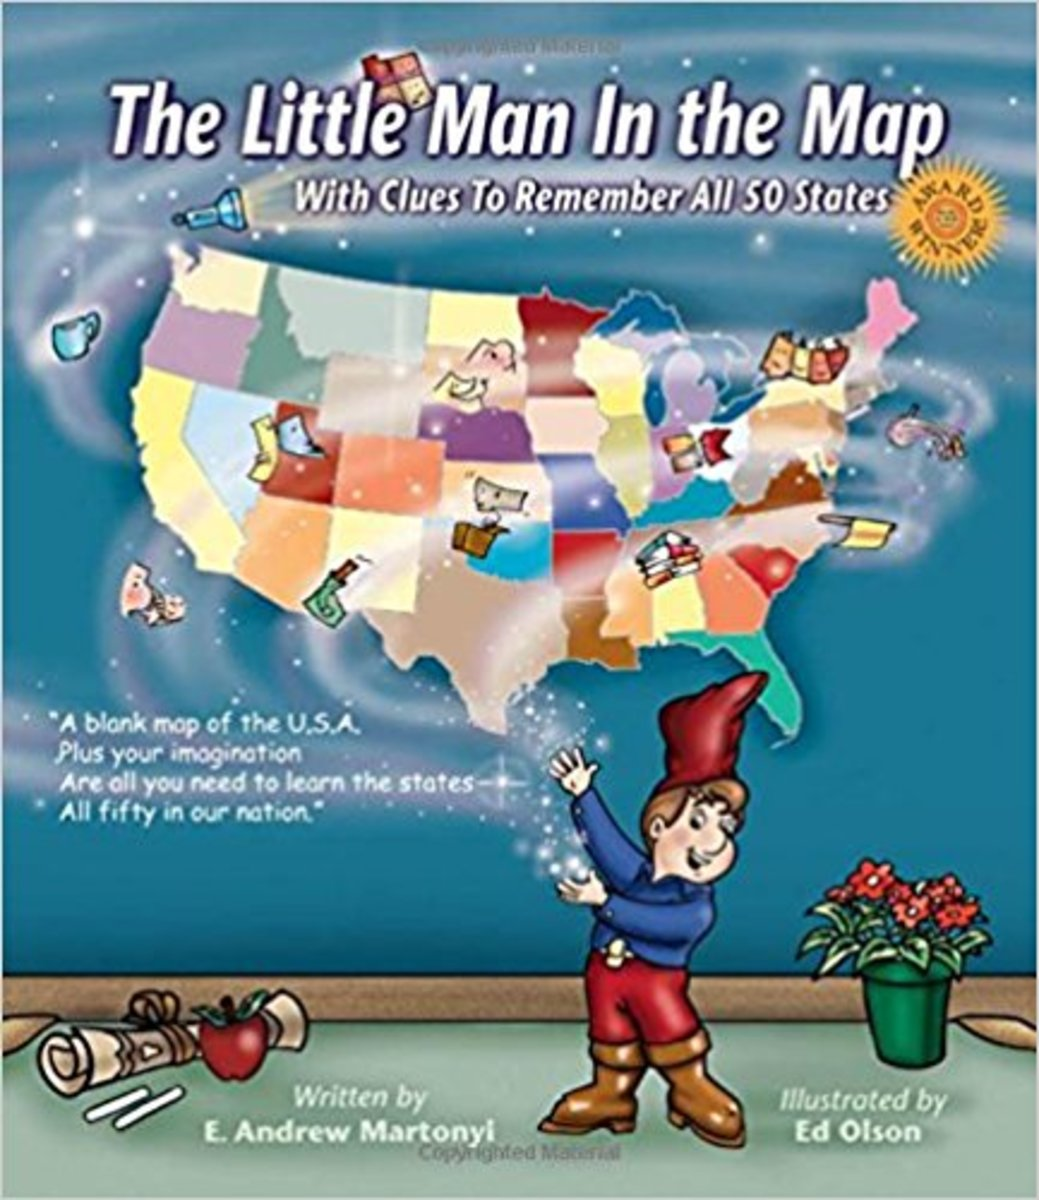 The Little Man In the Map: With Clues To Remember All 50 States by E. Andrew Martonyi - Book image is from amazon.com.